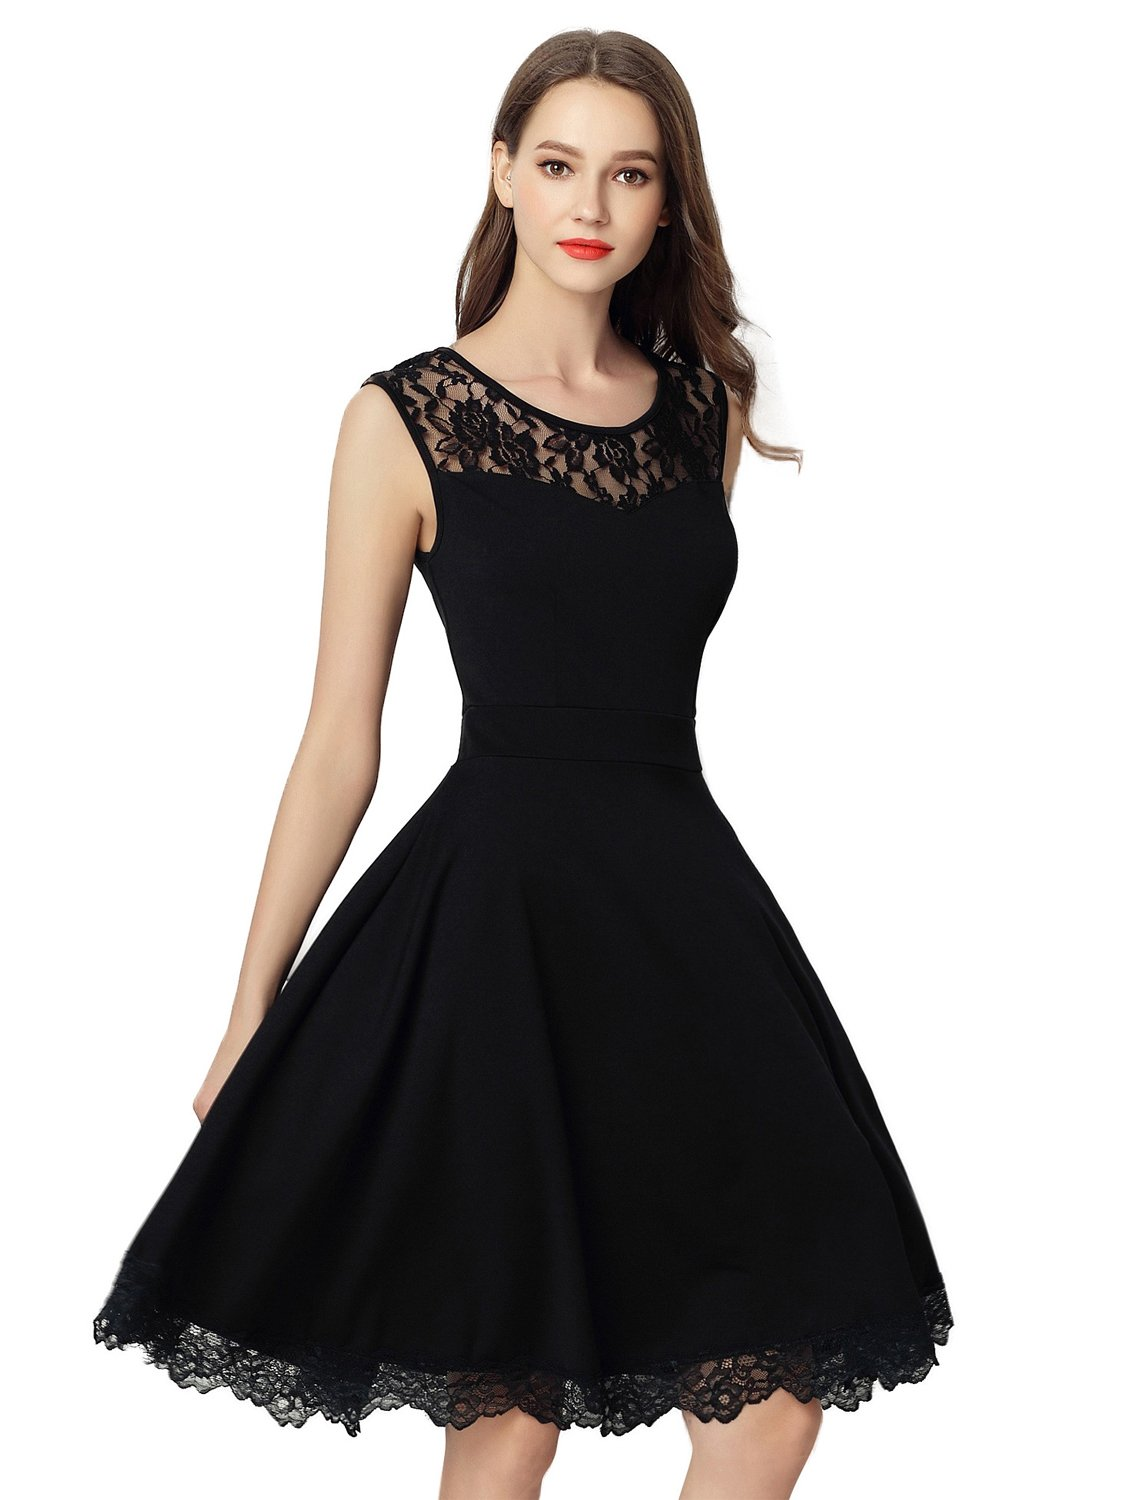 Dresms Women Sleeveless Lace Floral Elegant Cocktail Dress Crew Neck Knee Length (Black, Small) by Dresms (Image #3)